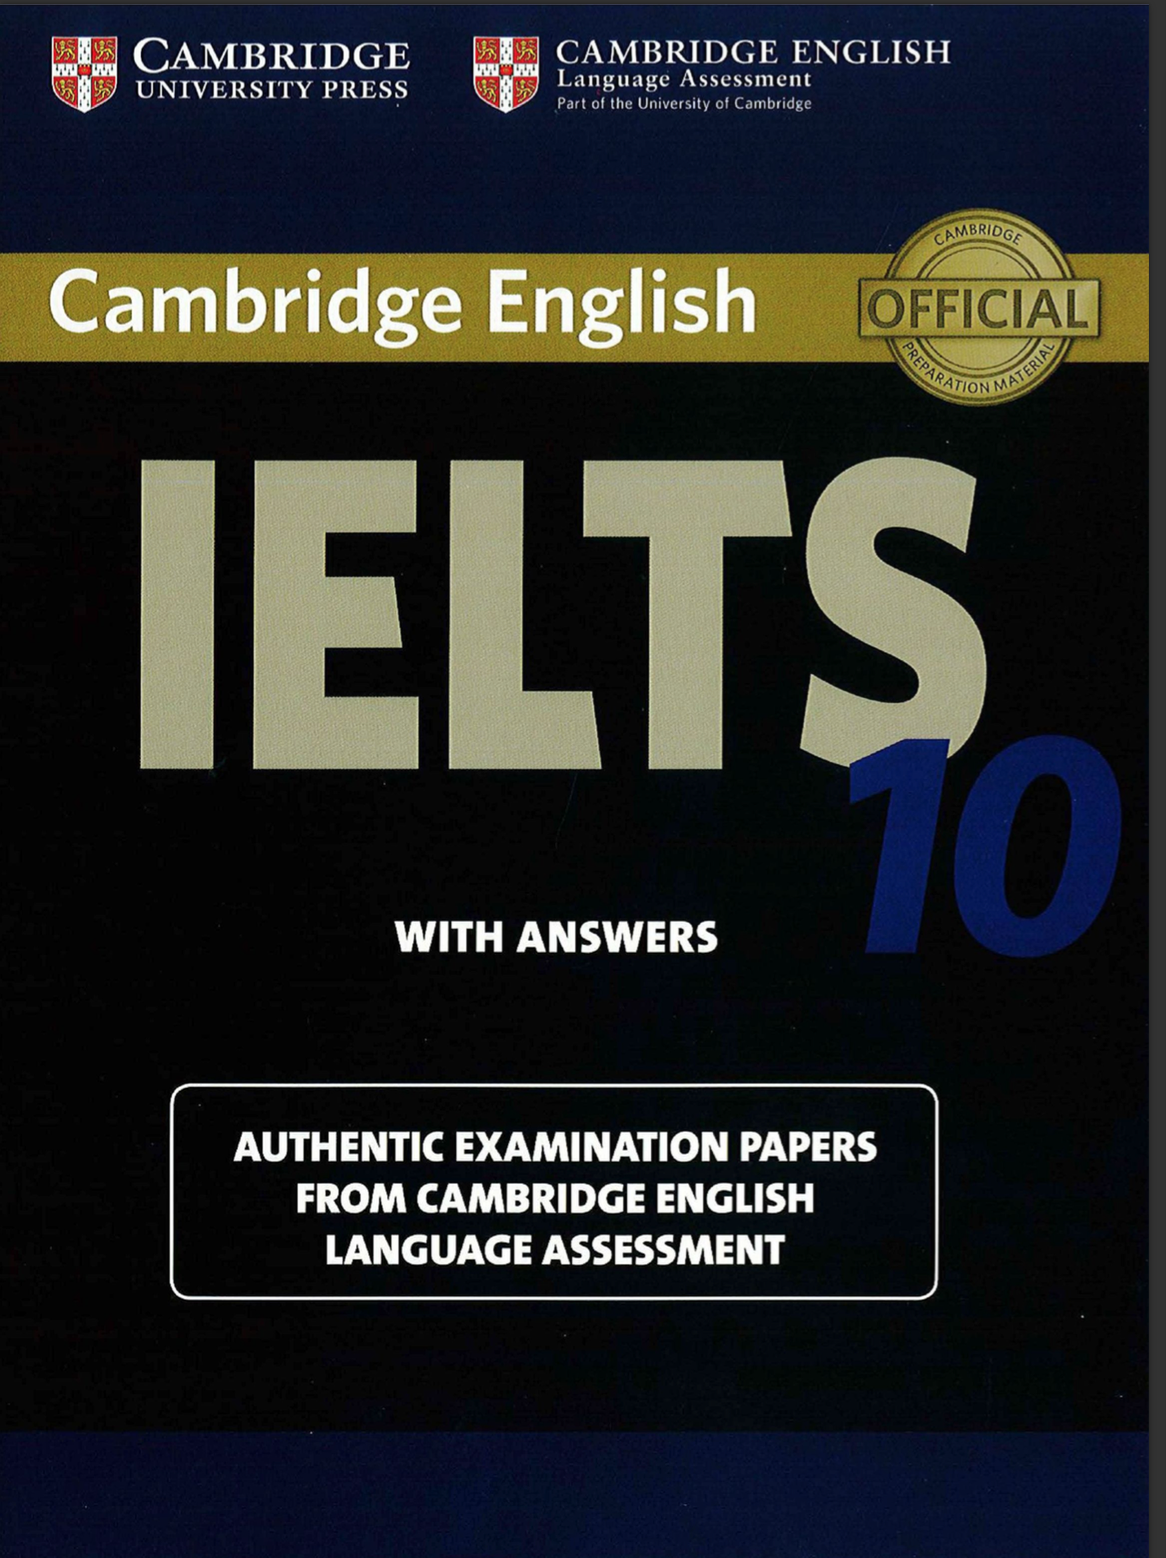 Descargar Libro English Grammar In Use Ielts Test Materials Cambridge Ielts 10 Free Download Ielts